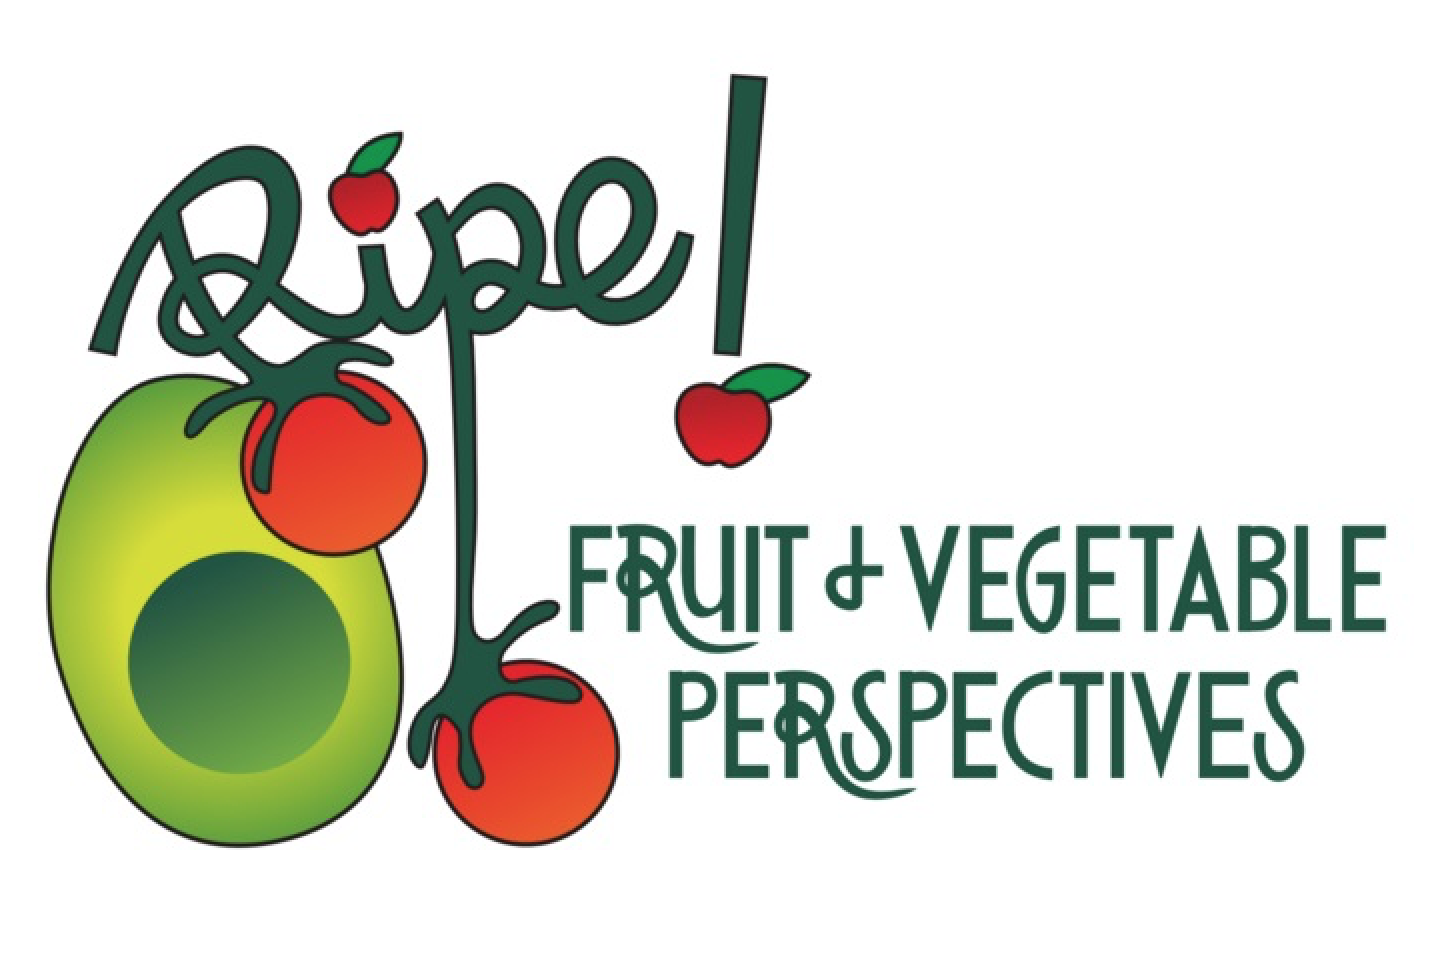 RIPE! Fruit and Vegetable Perspectives by Jan Kirsh.